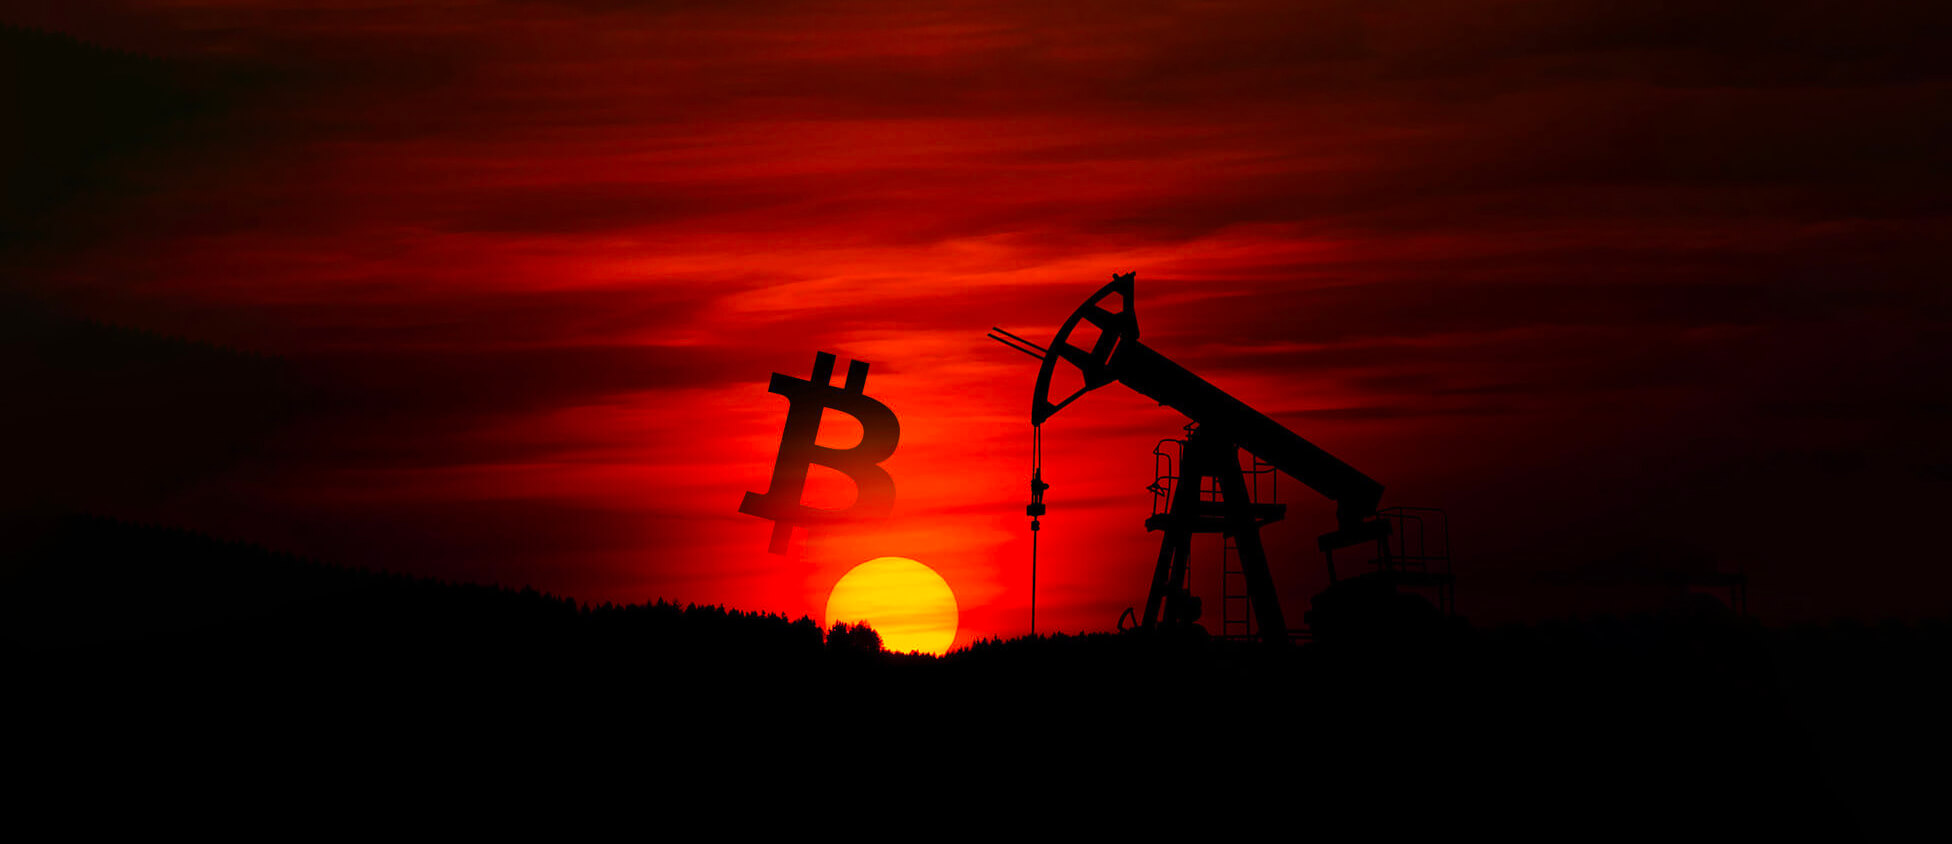 Bitcoin and Oil & Gas Are Fighting the Same Battle